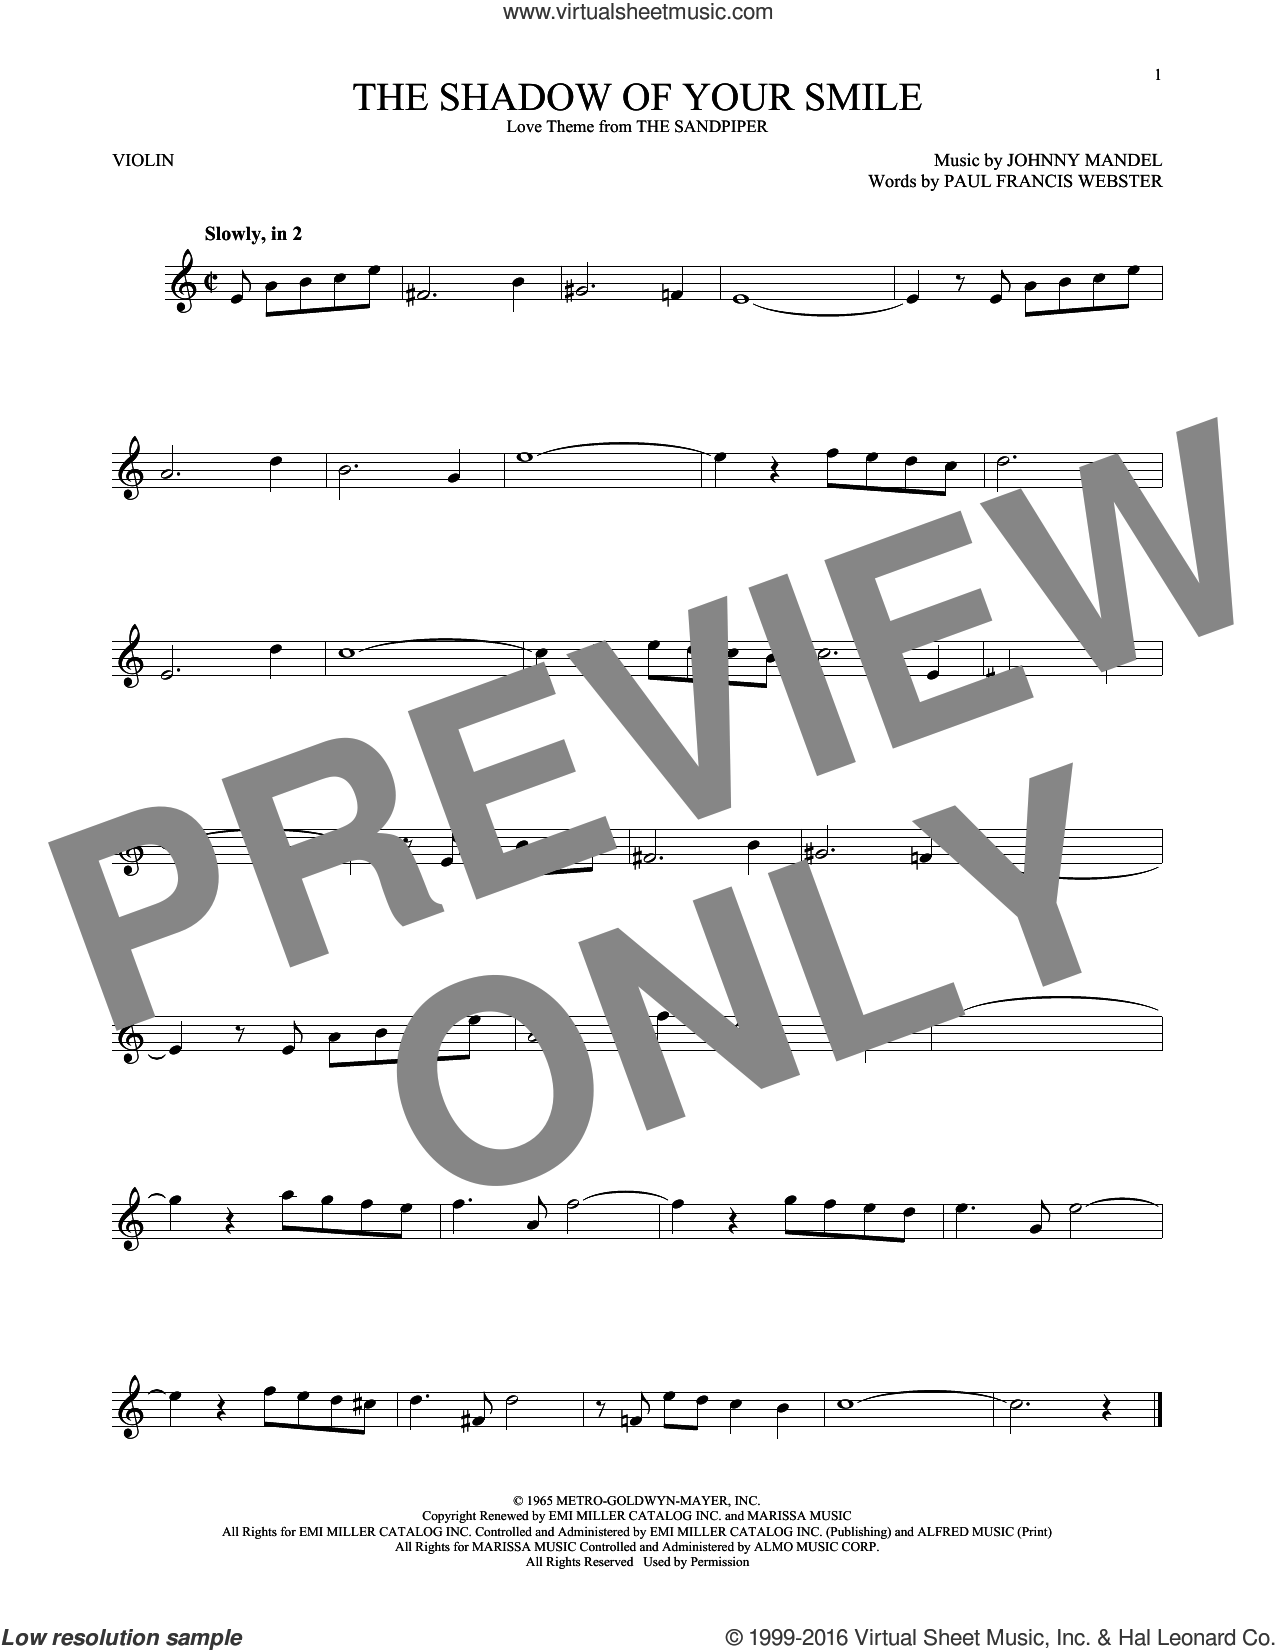 The Shadow Of Your Smile sheet music for violin solo by Paul Francis Webster and Johnny Mandel, intermediate skill level